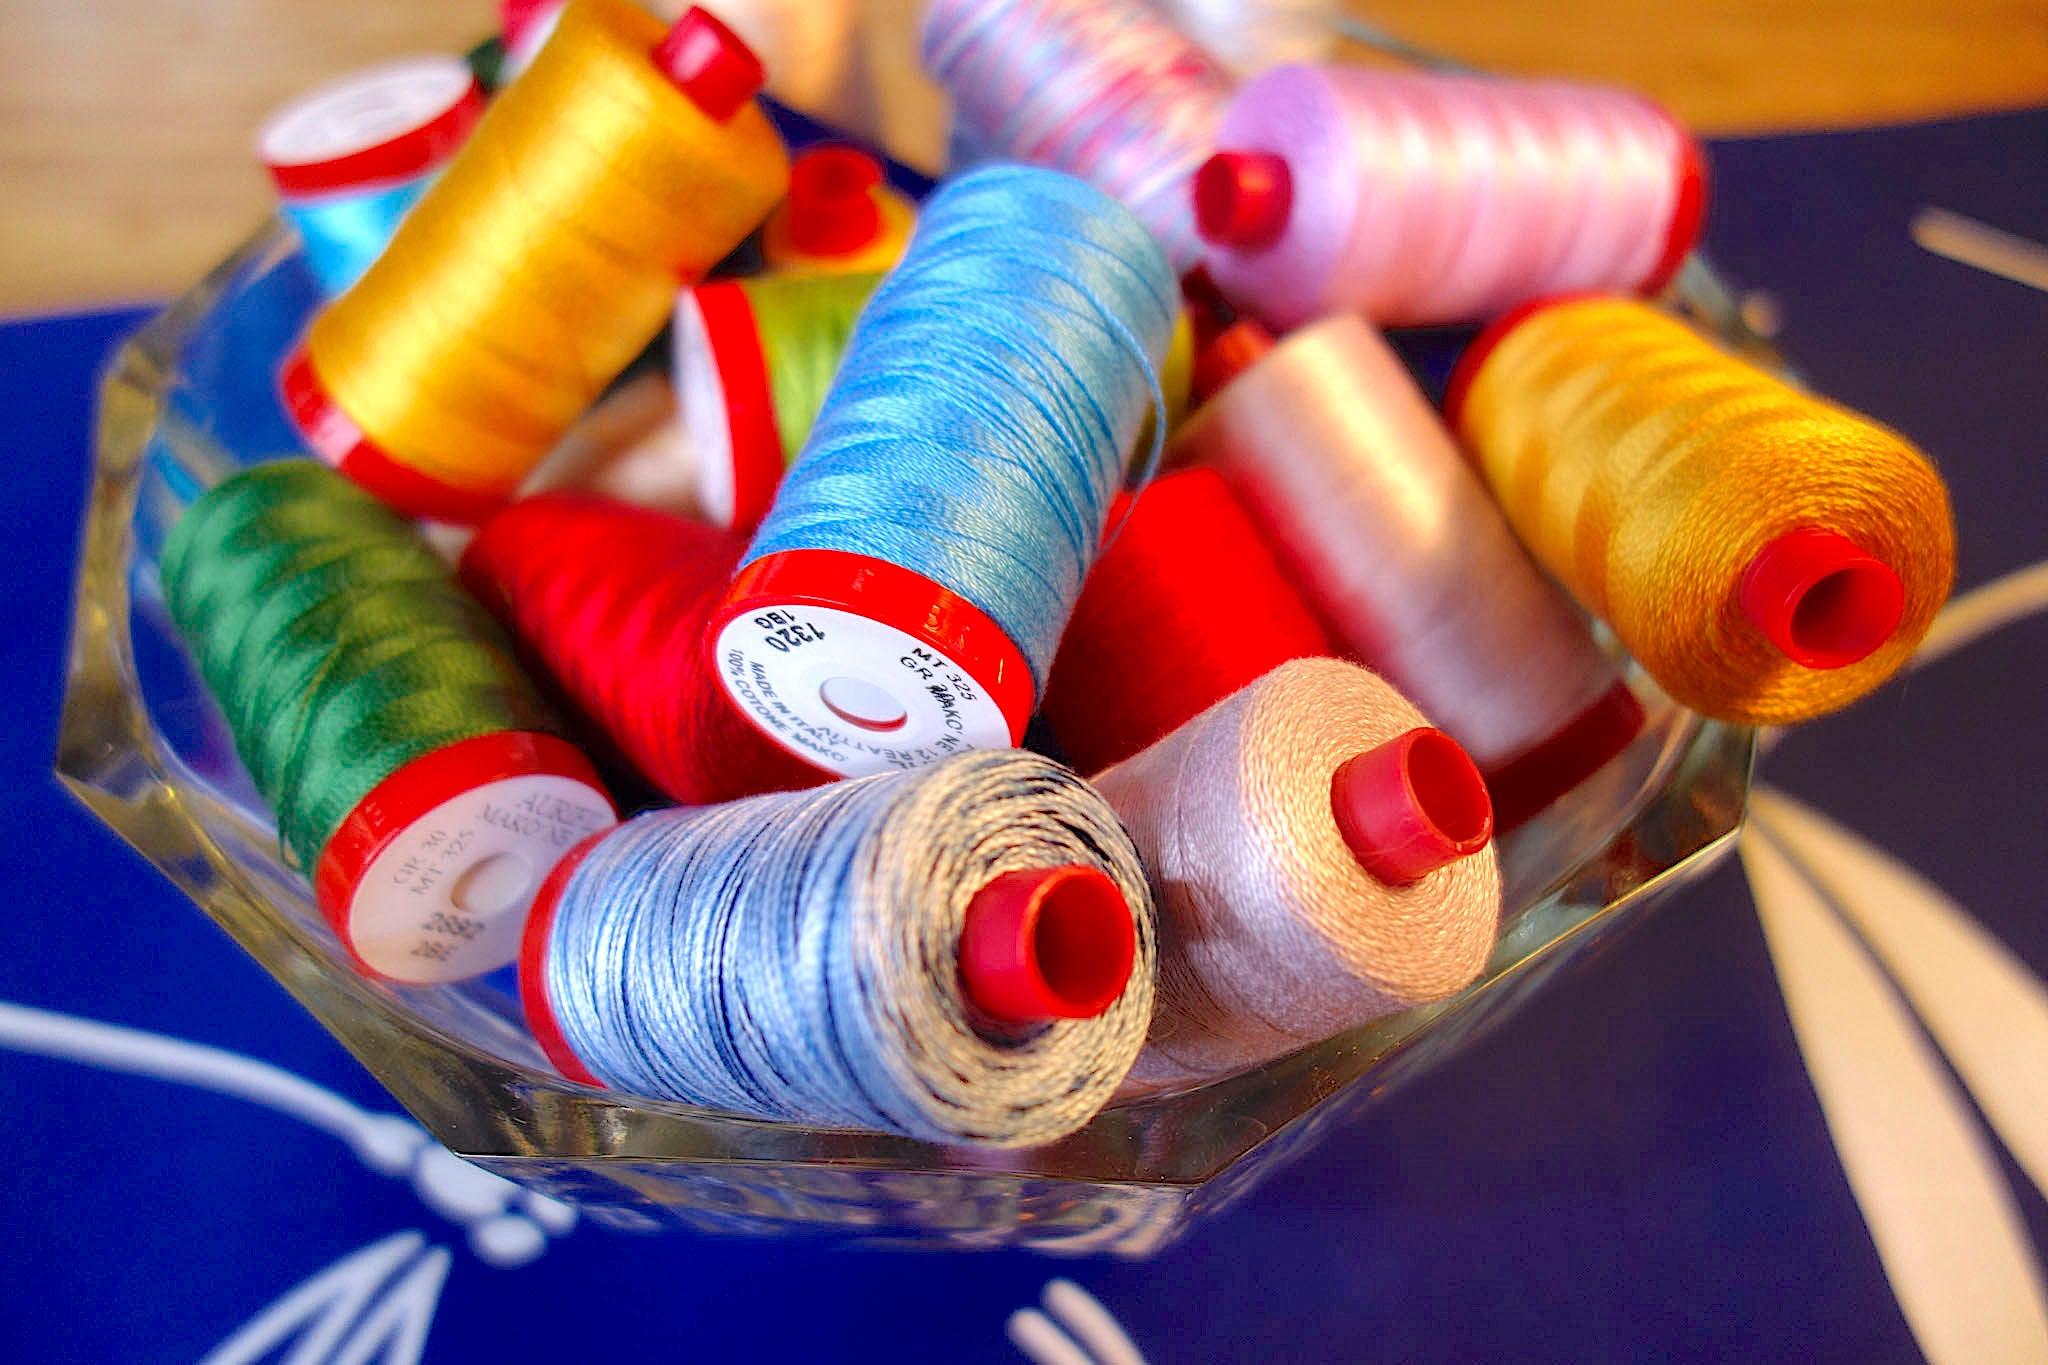 Aurifil 12wt cotton thread used in the Baby Lock Sashiko 2 sewing machine to create a Big Stitch look